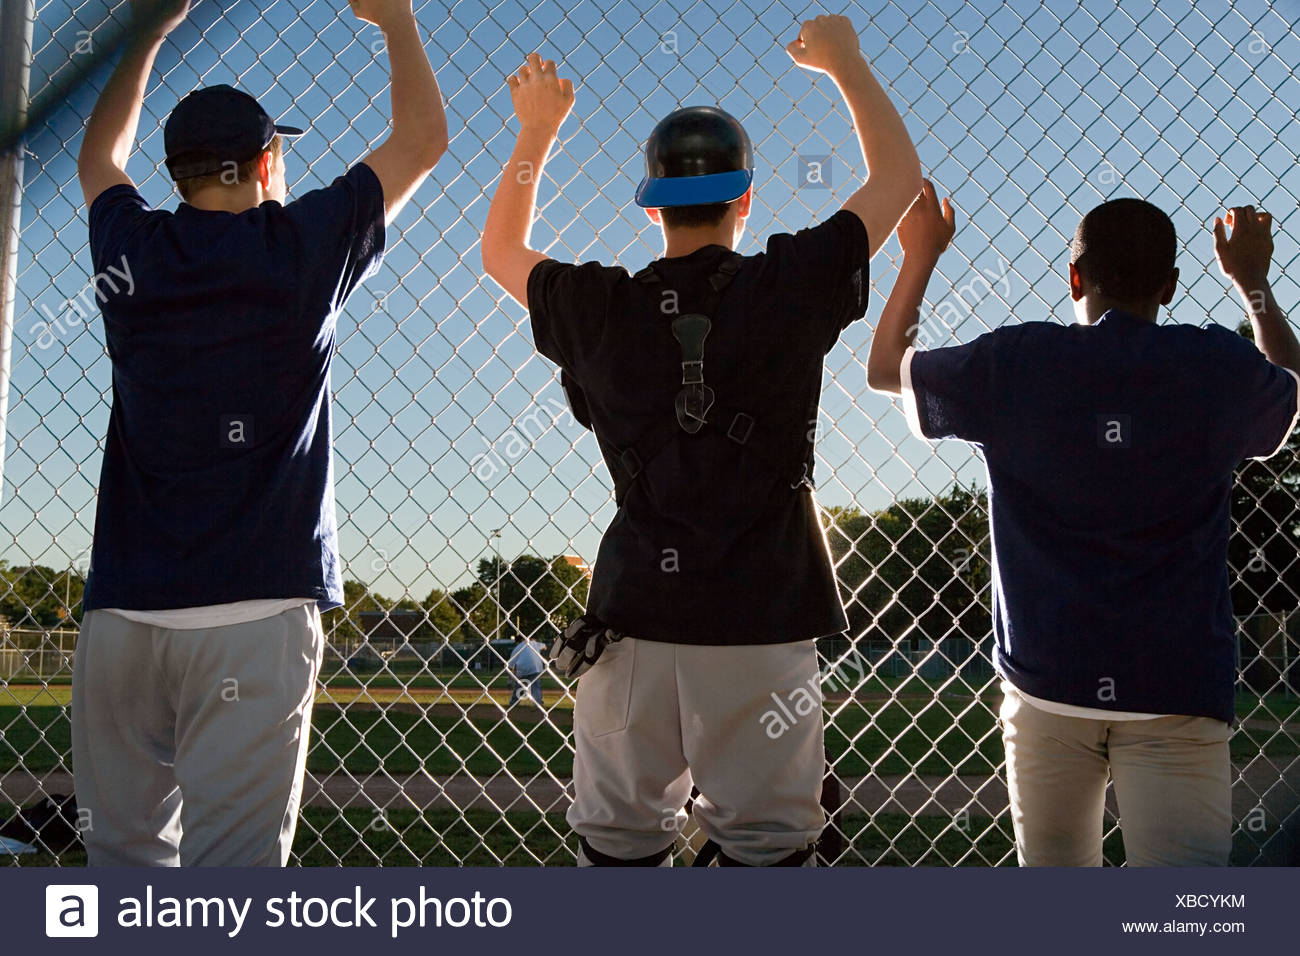 Three teenagers watching from the sidelines - Stock Image